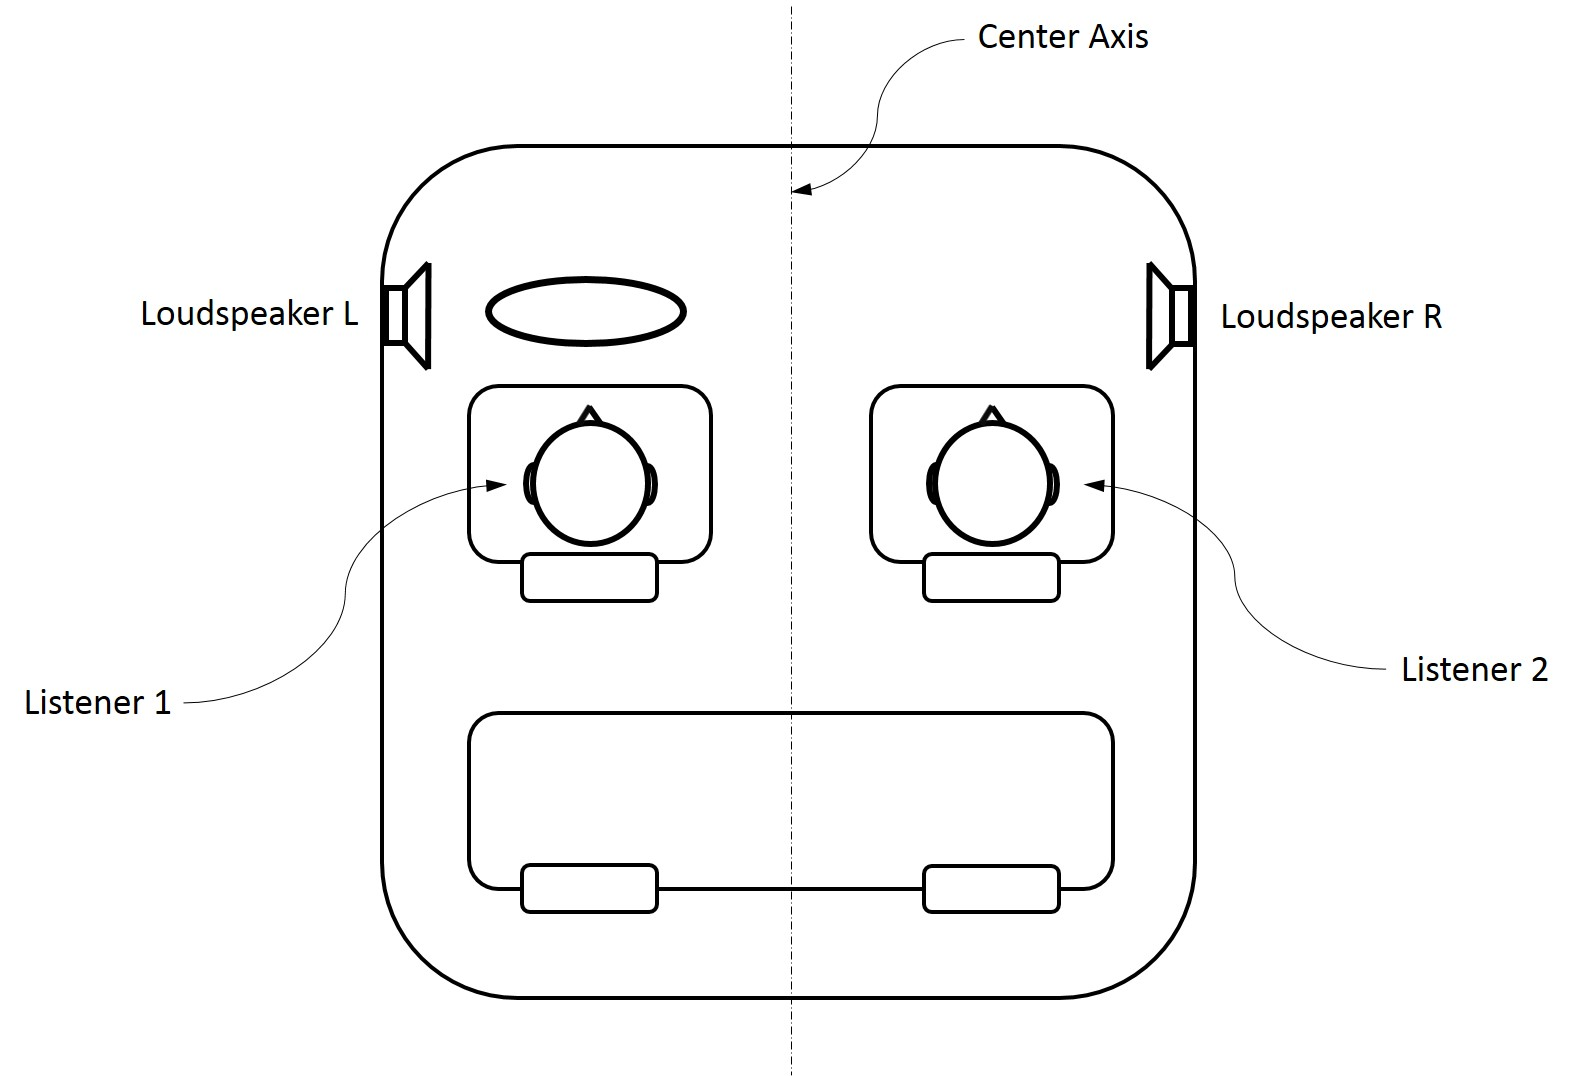 Figure 3: Two listeners in an automobile, sitting to the left and the right of the center axis.